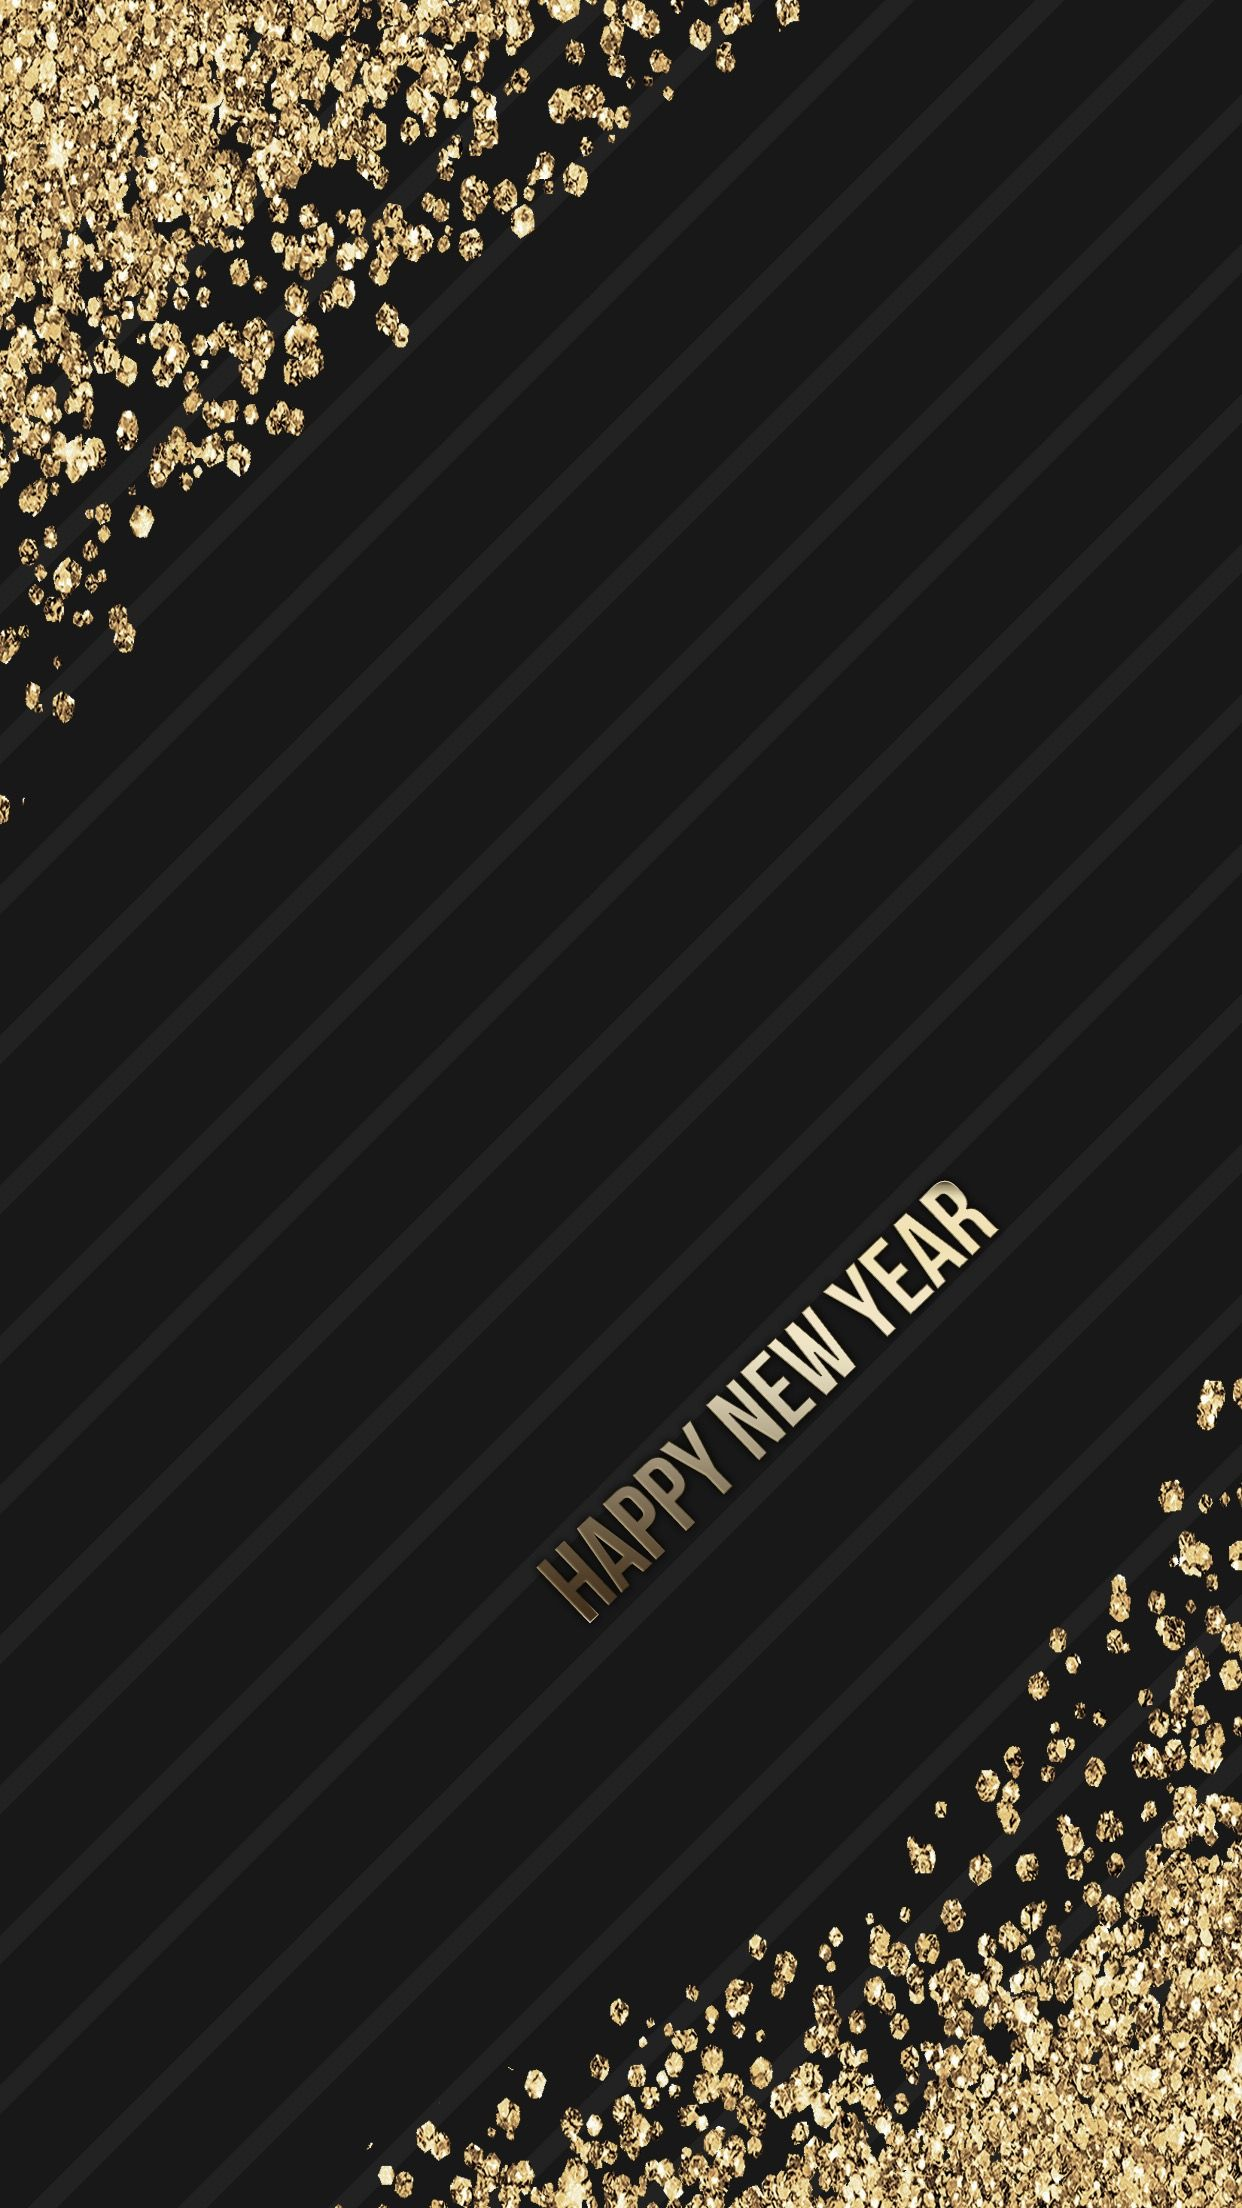 Glitter Wallpaper Holiday Mobile 2017 Iphone Wallpapers Backgrounds Black Gold